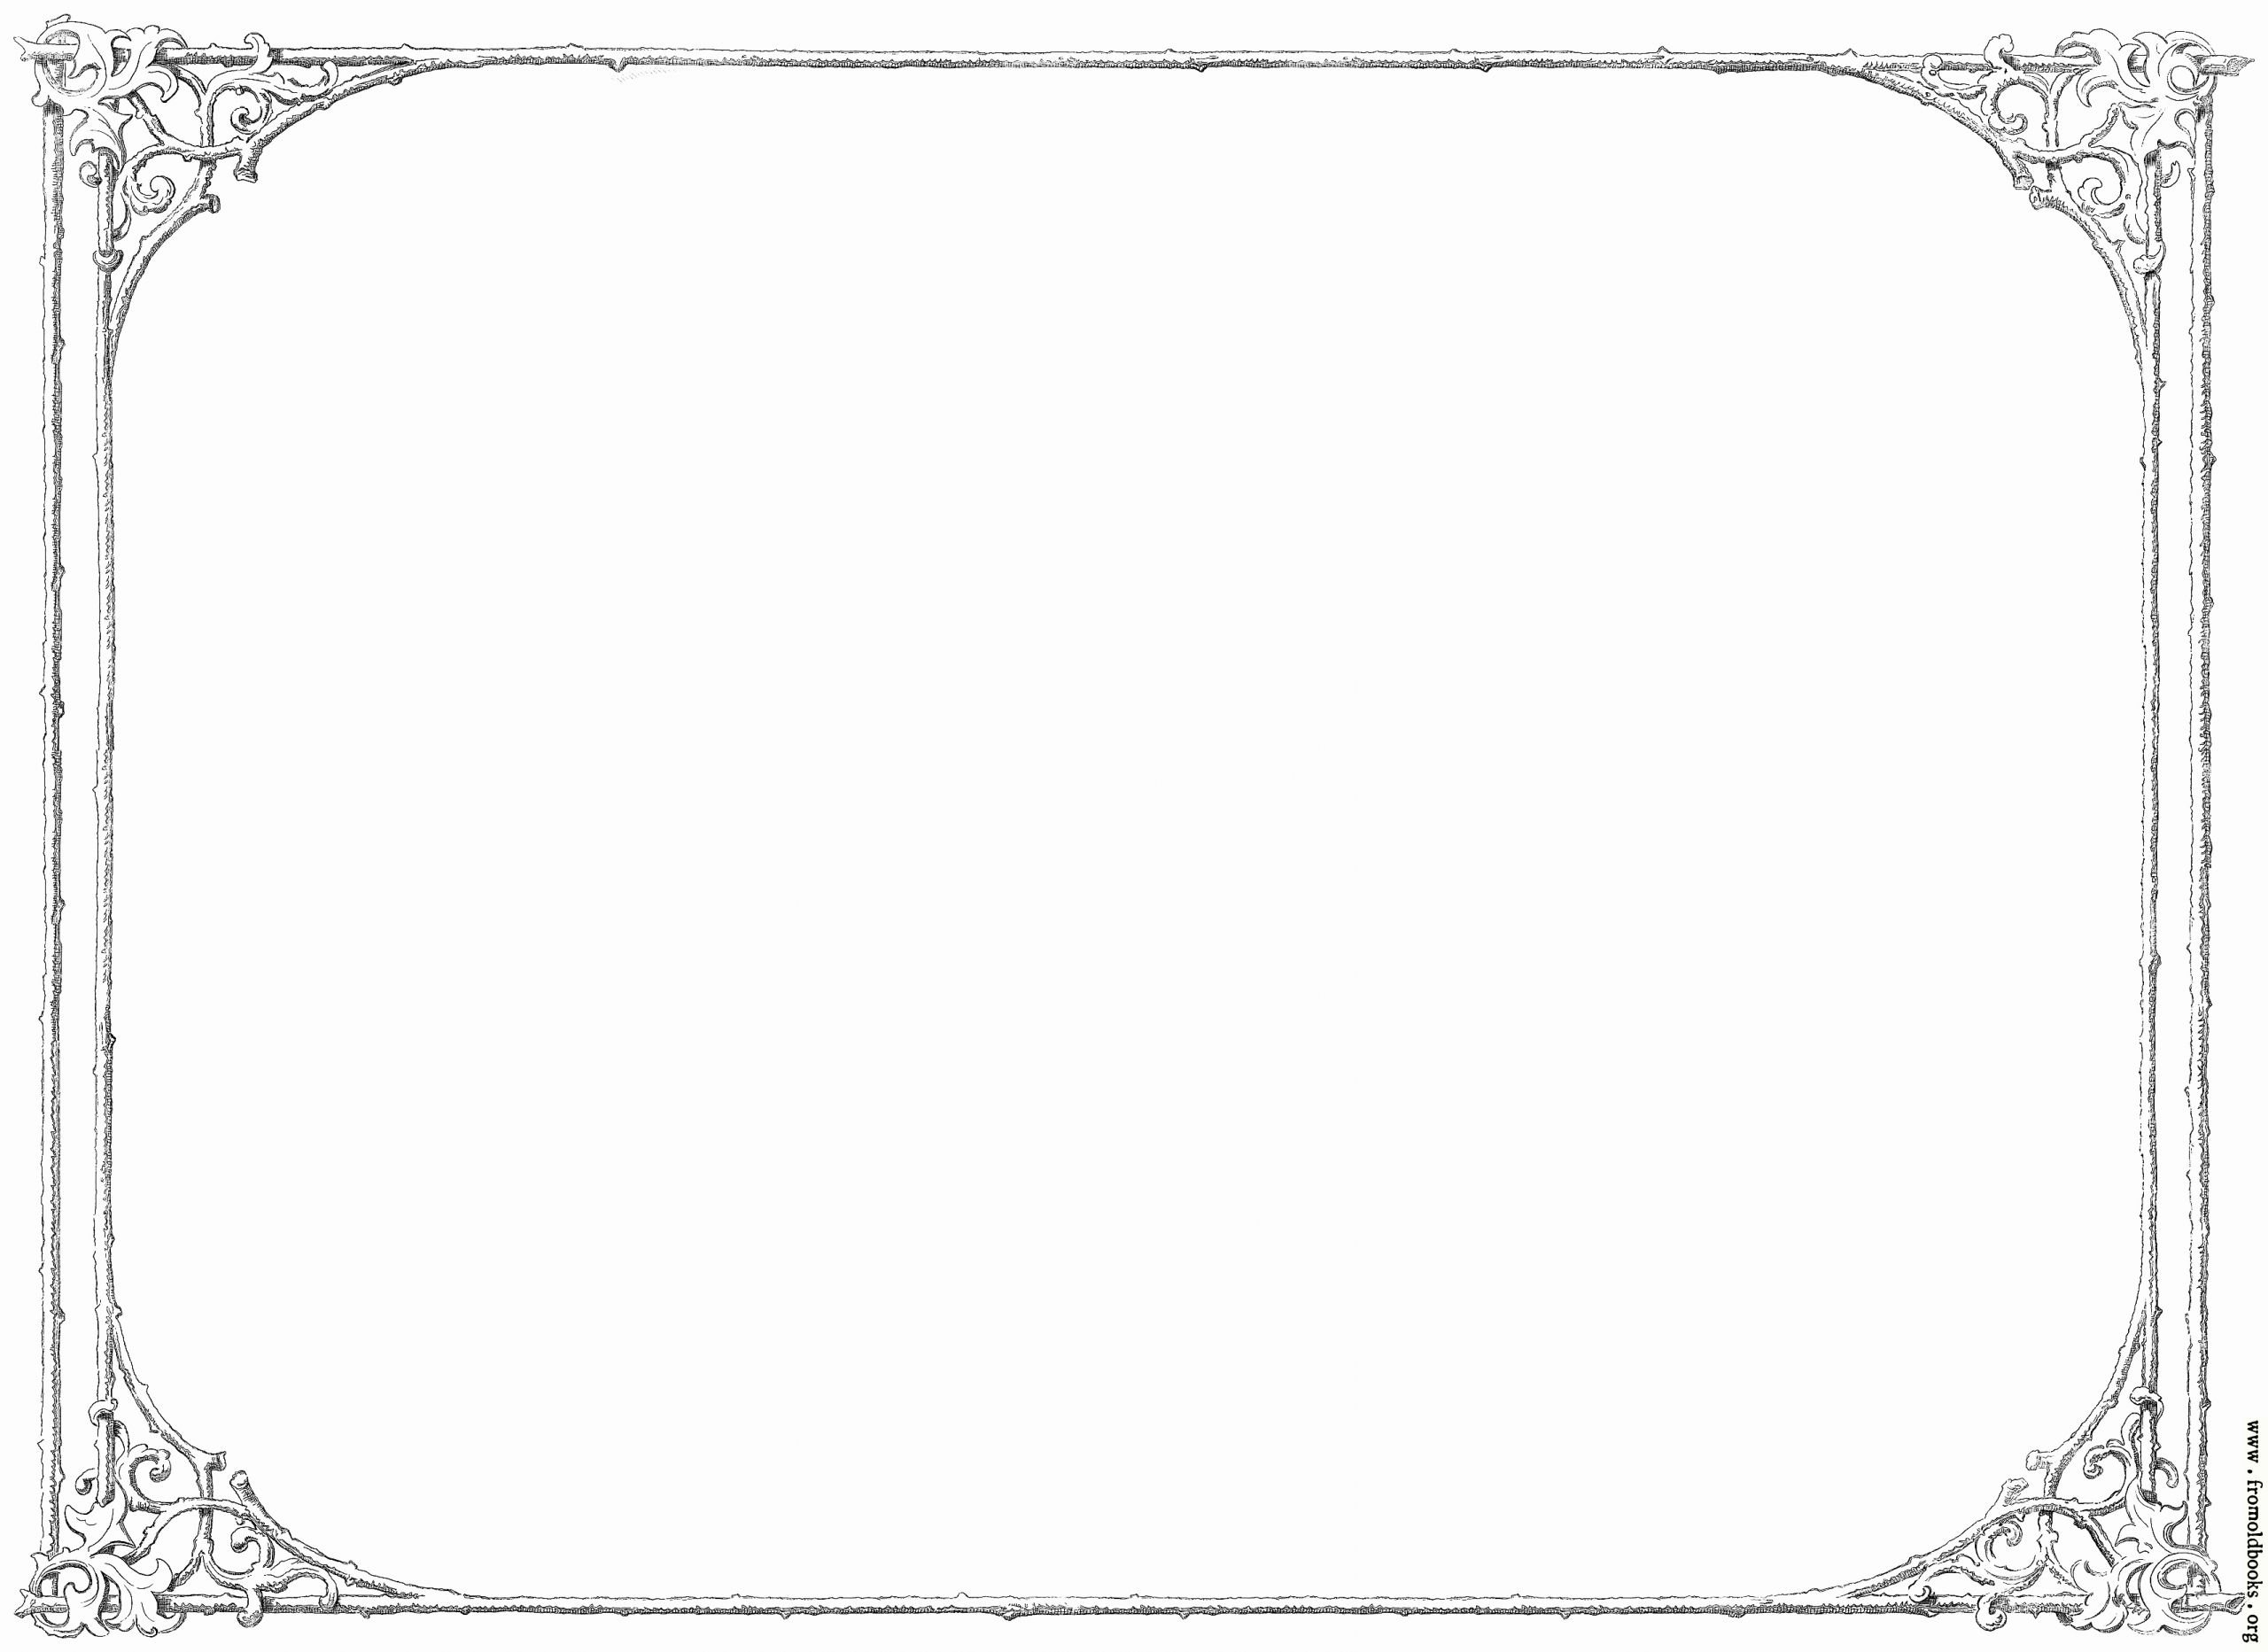 Formal Black and White Borders for Word Lovely Free Clip Art Victorian Border Of Twigs and Leaves